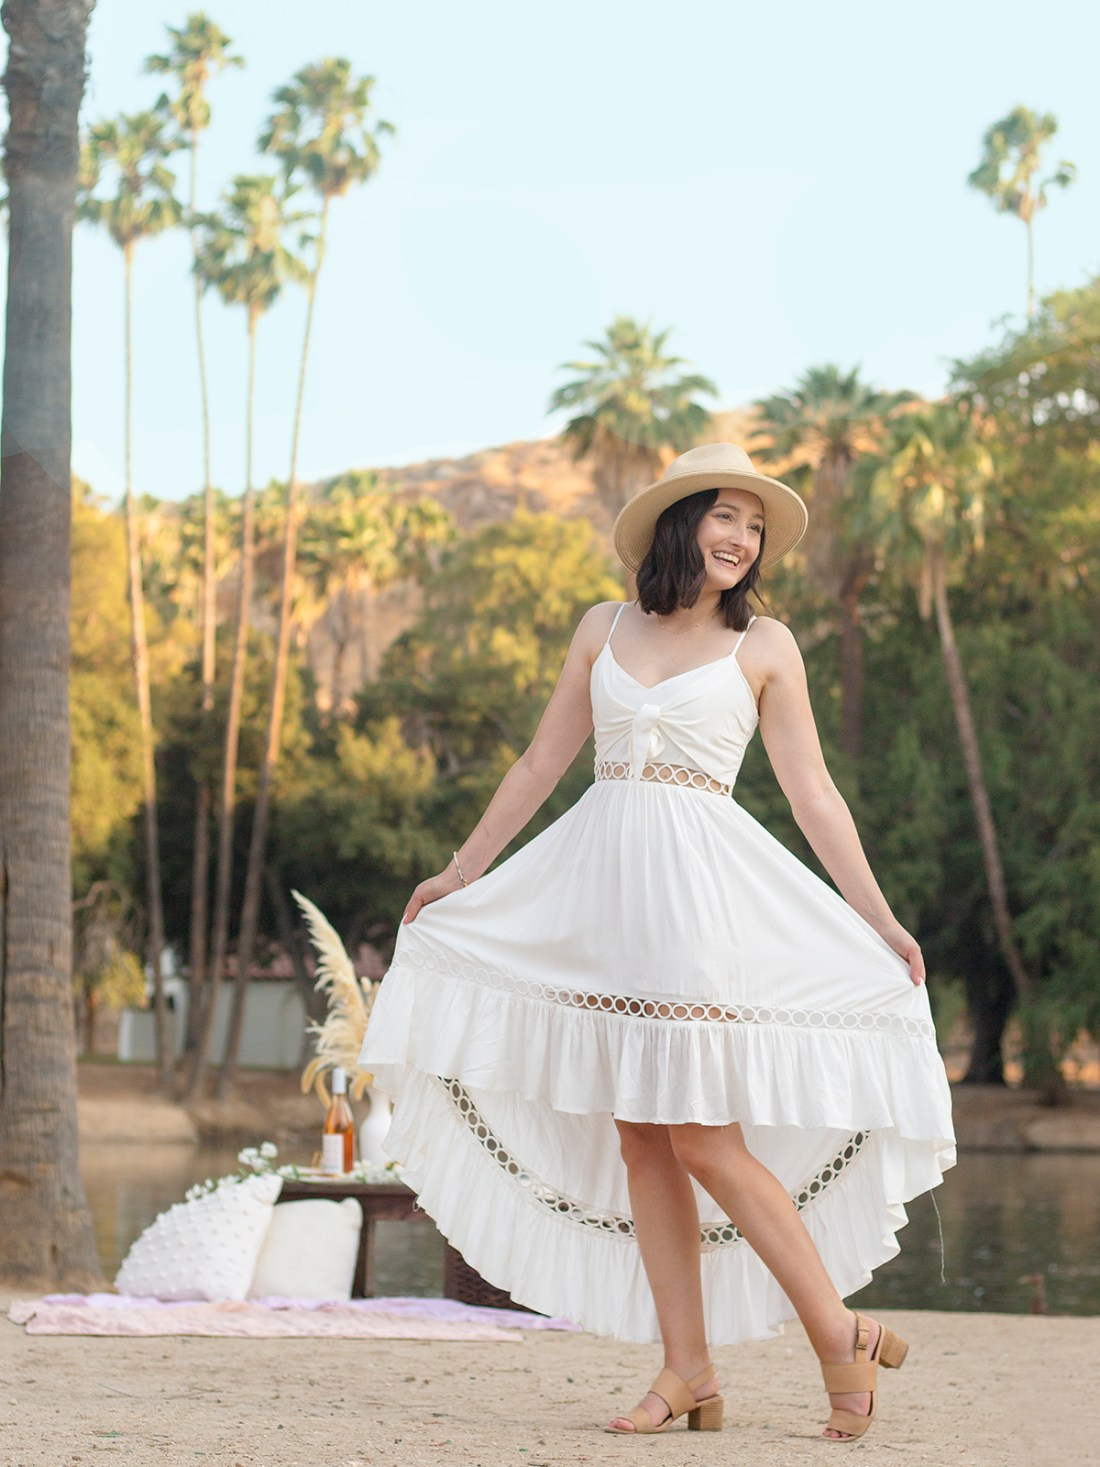 All Out Chic Boutique White Sand Dress | A Good Hue